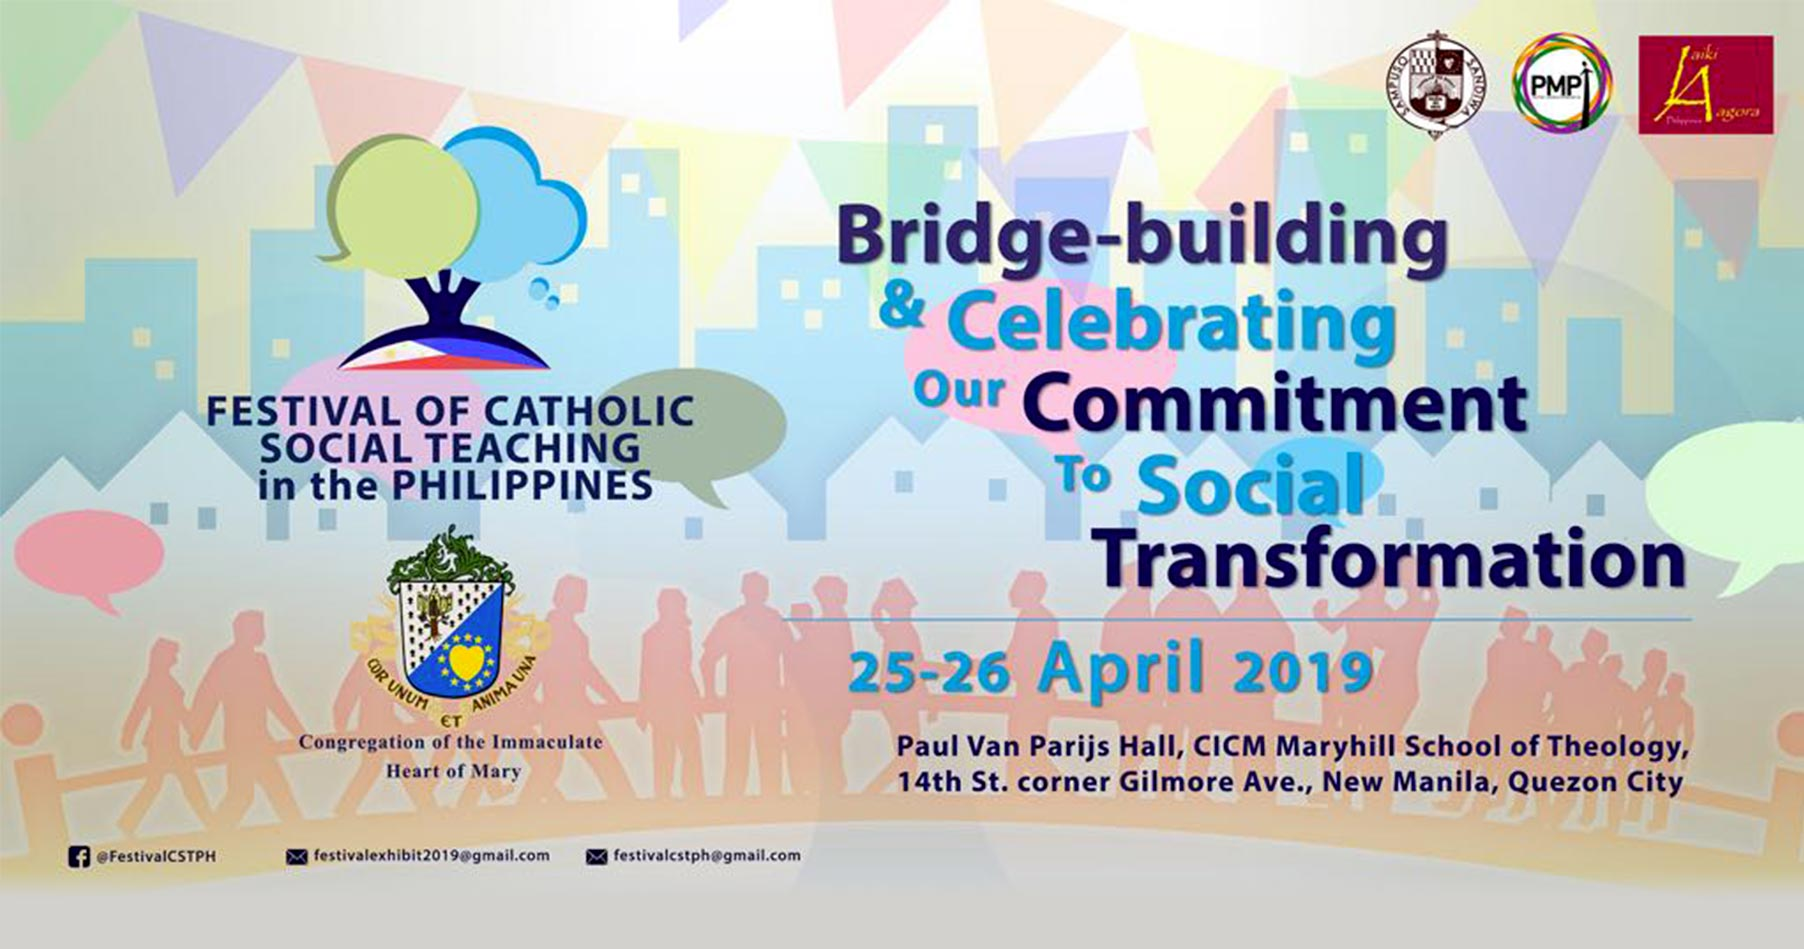 Festival of Catholic Social Teaching Philippines